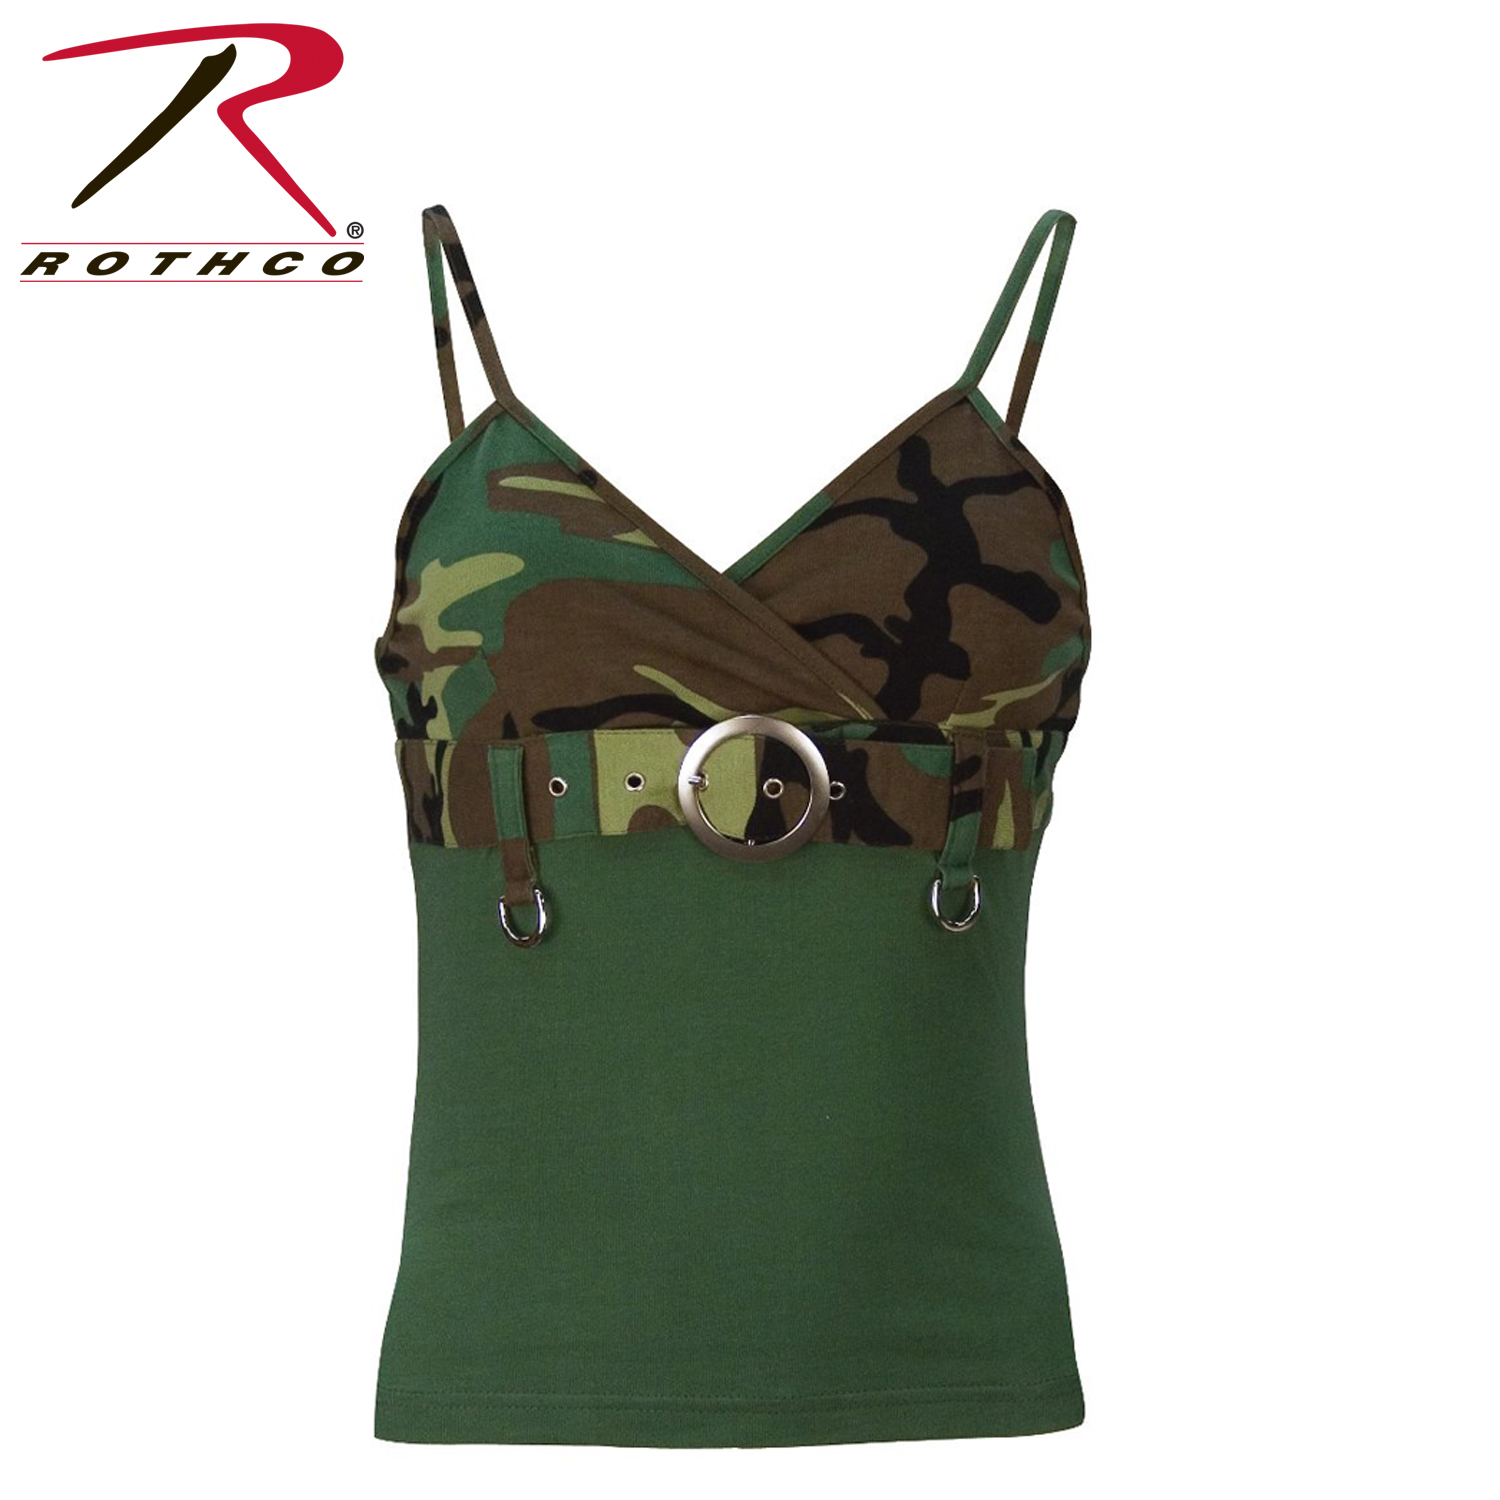 5934af435c126 Rothco Womens 2-Tone Tank Top w/ Buckle